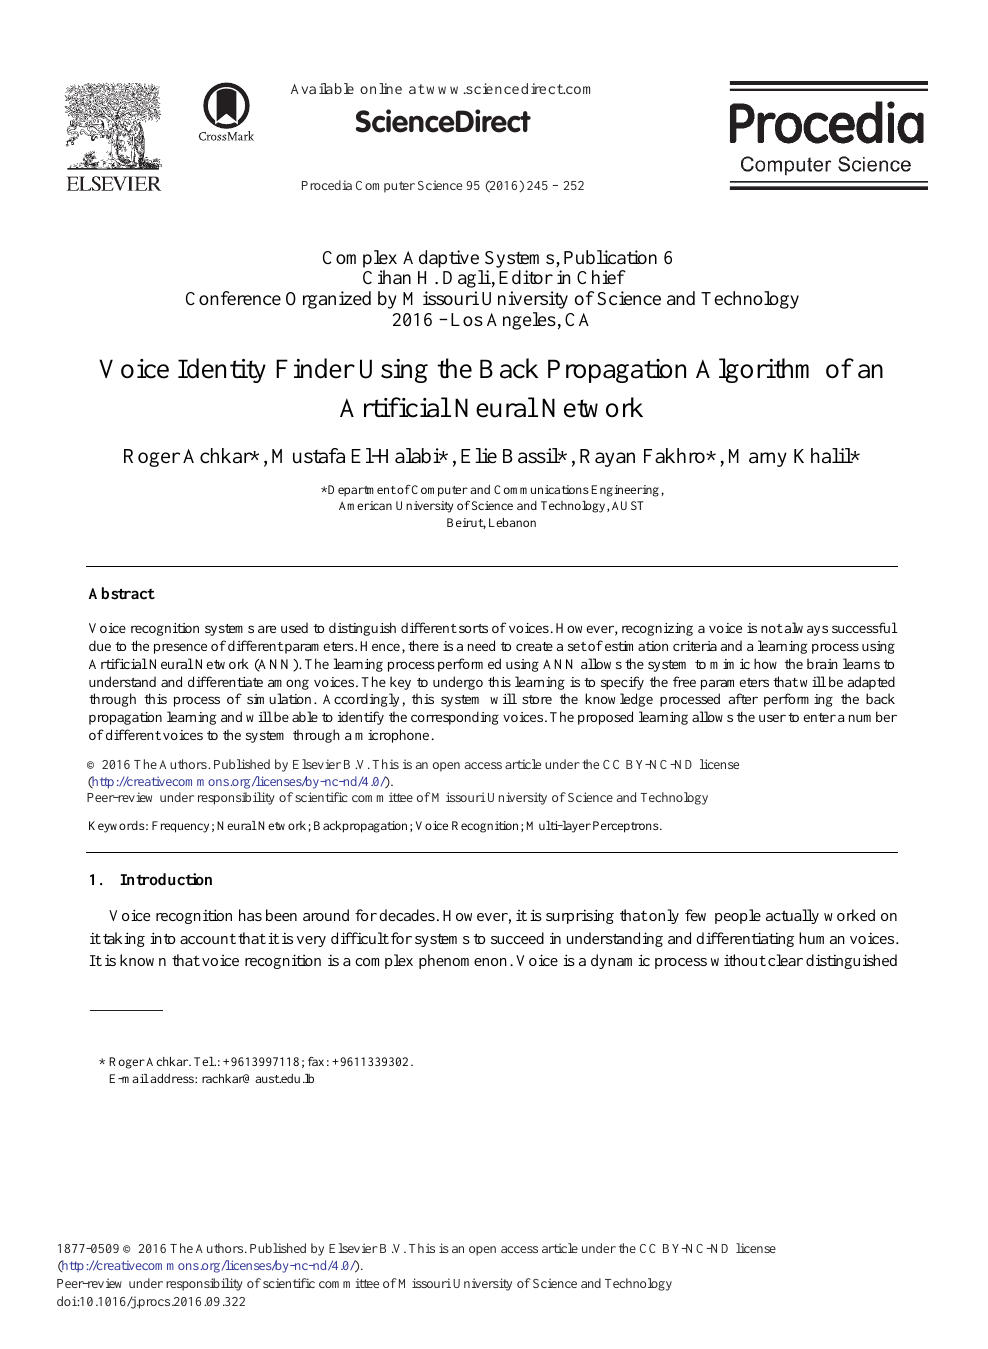 Voice Identity Finder Using the Back Propagation Algorithm